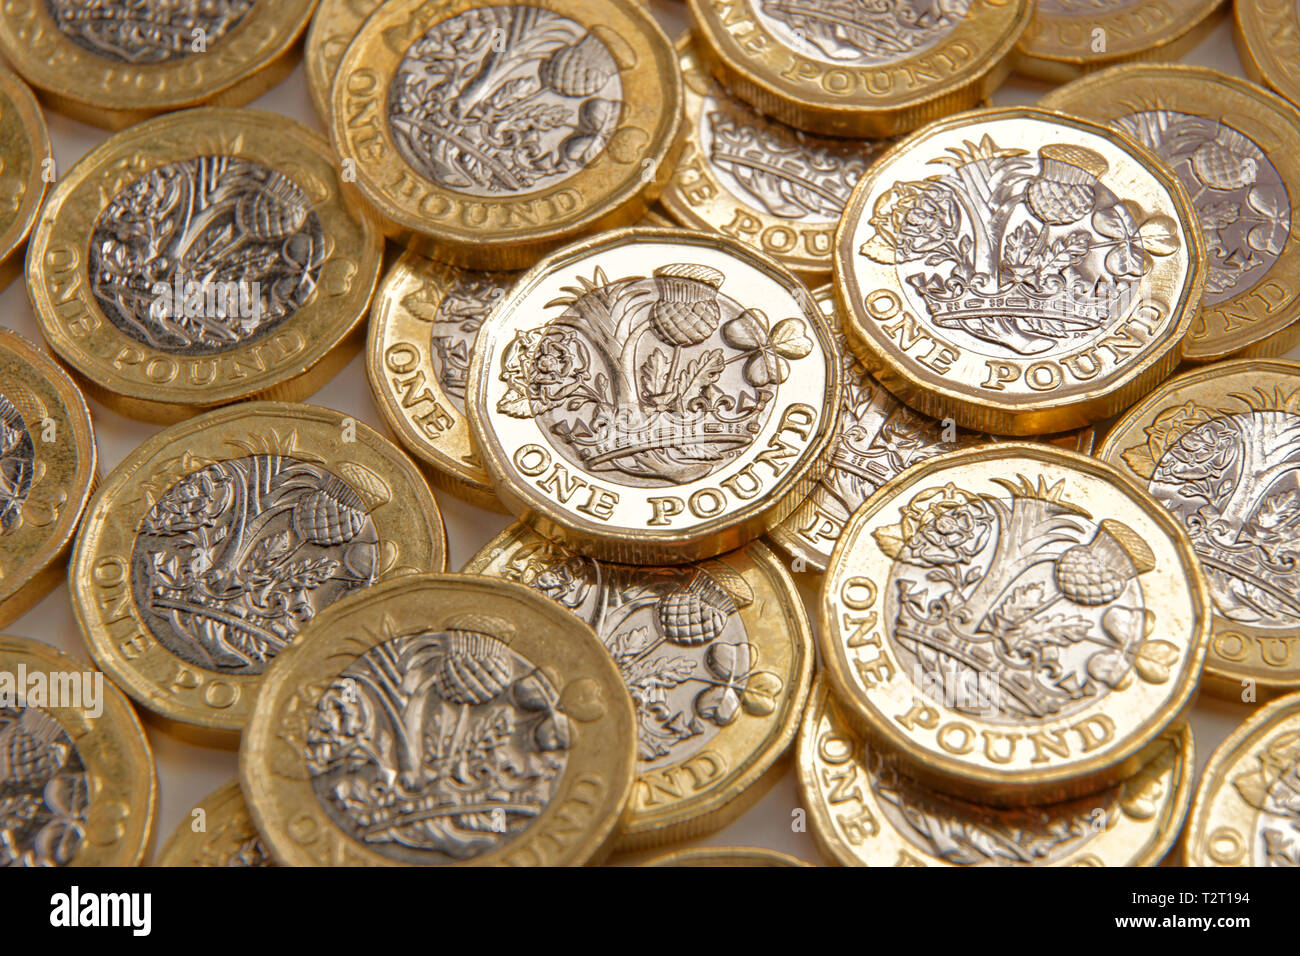 UK Pound Sterling coins. - Stock Image